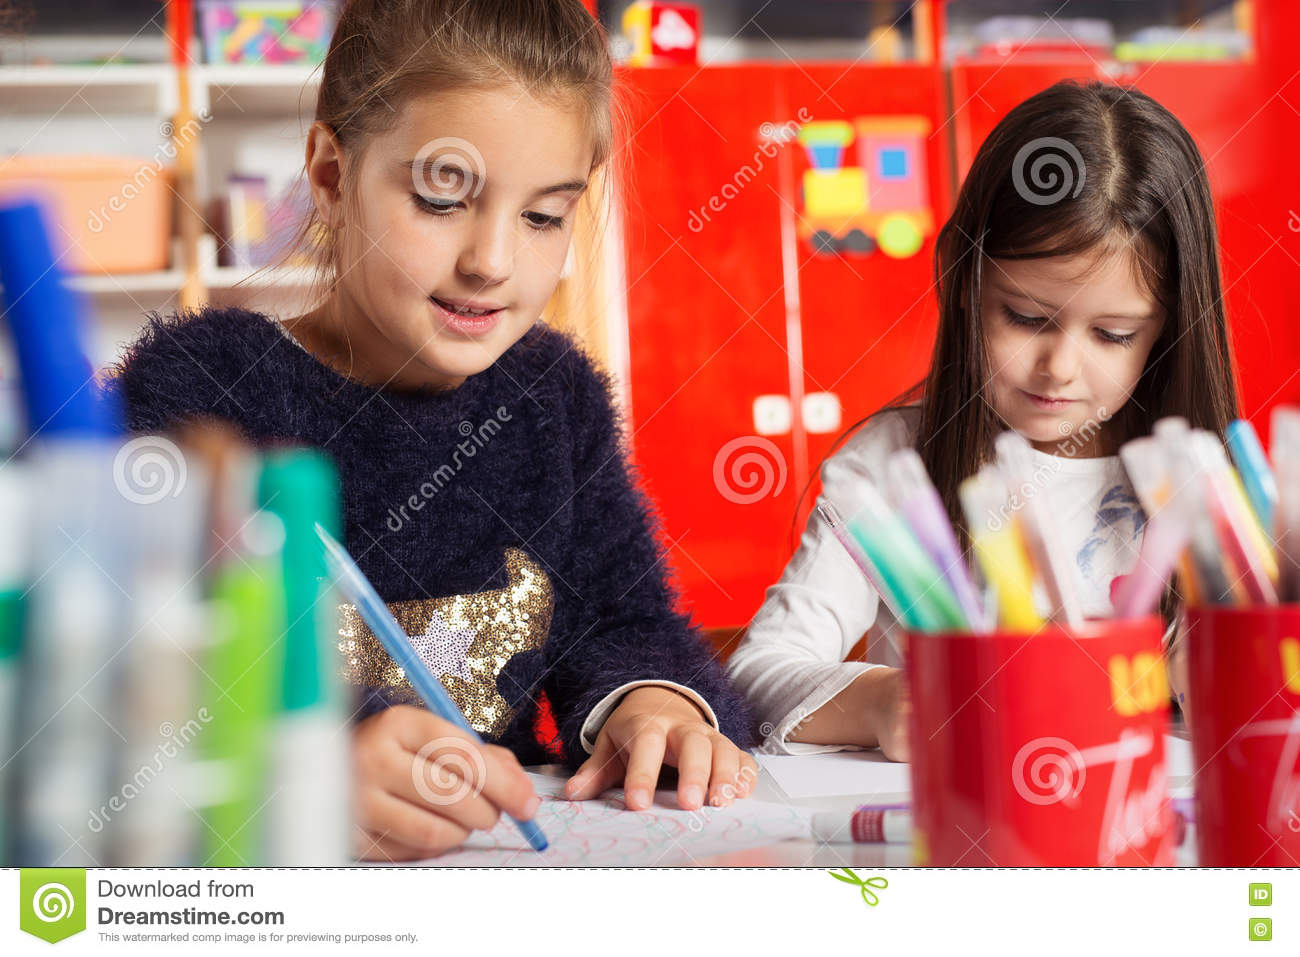 drawing games for little girls Two Little Girls Drawing On Paper At Table Stock Image